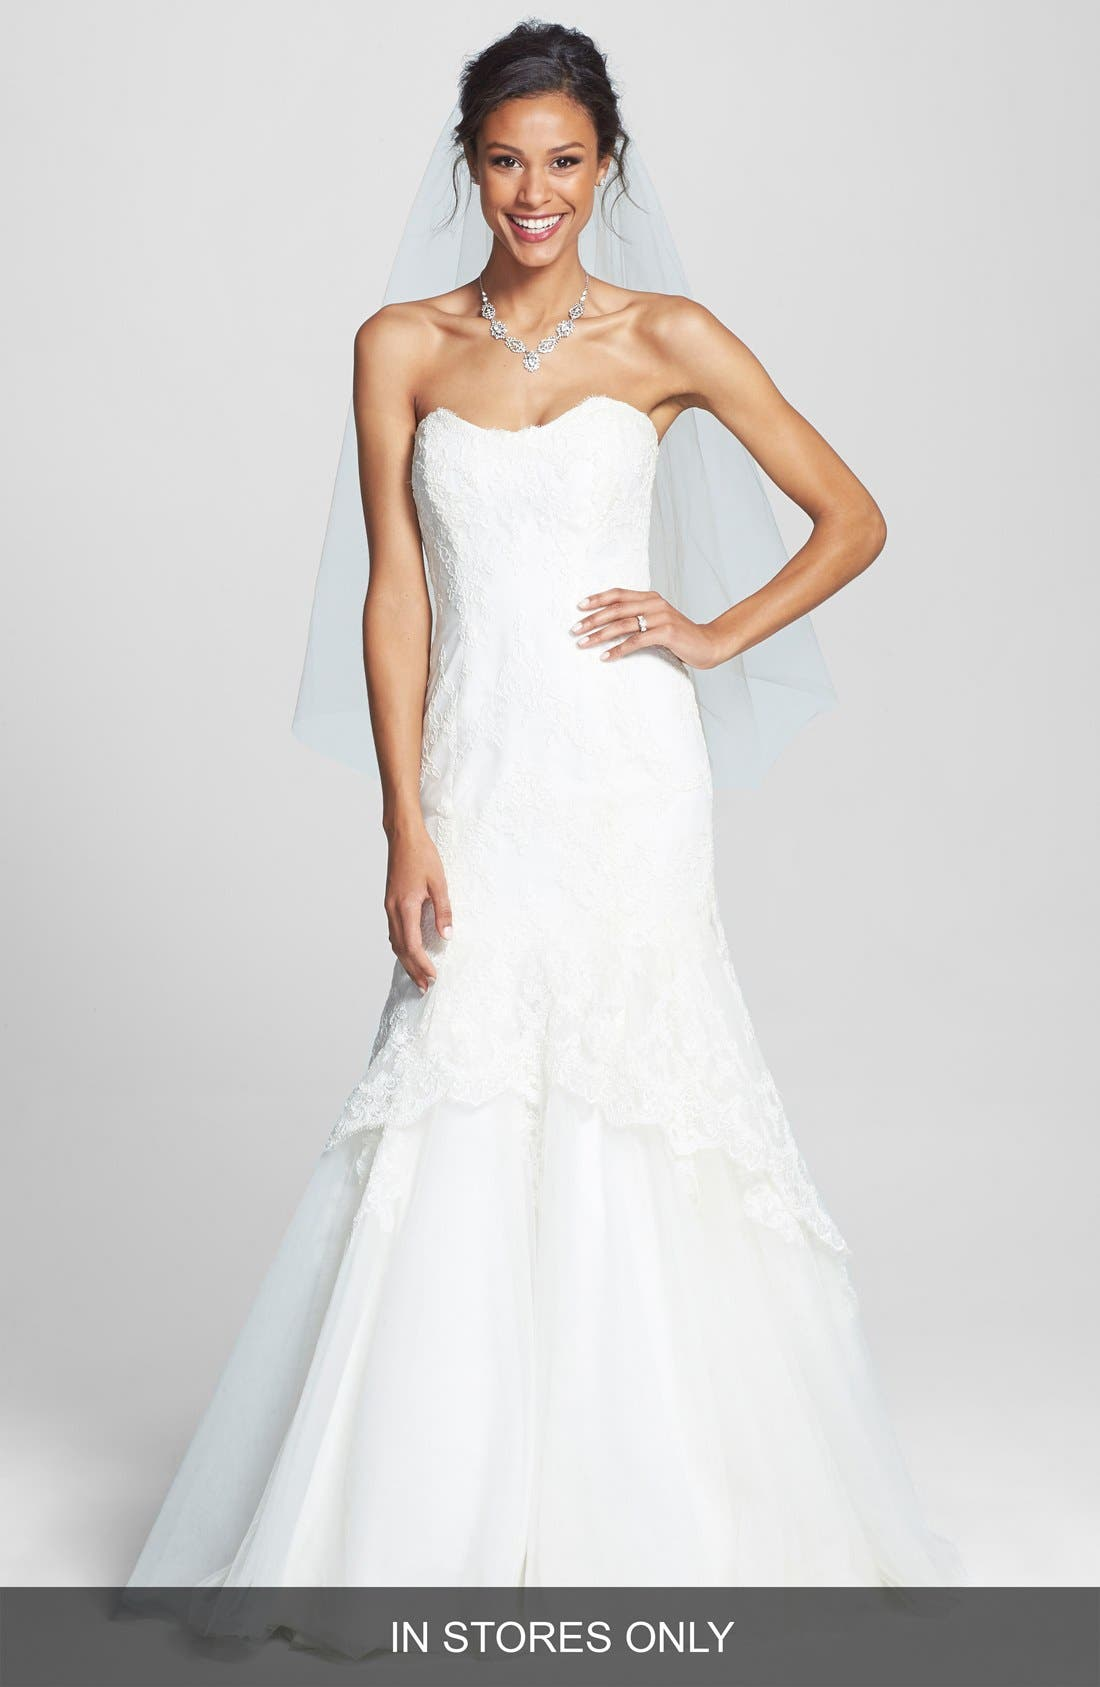 Main Image - BLISS Monique Lhuillier Lace Overlay Tulle Trumpet Wedding Dress (In Stores Only)